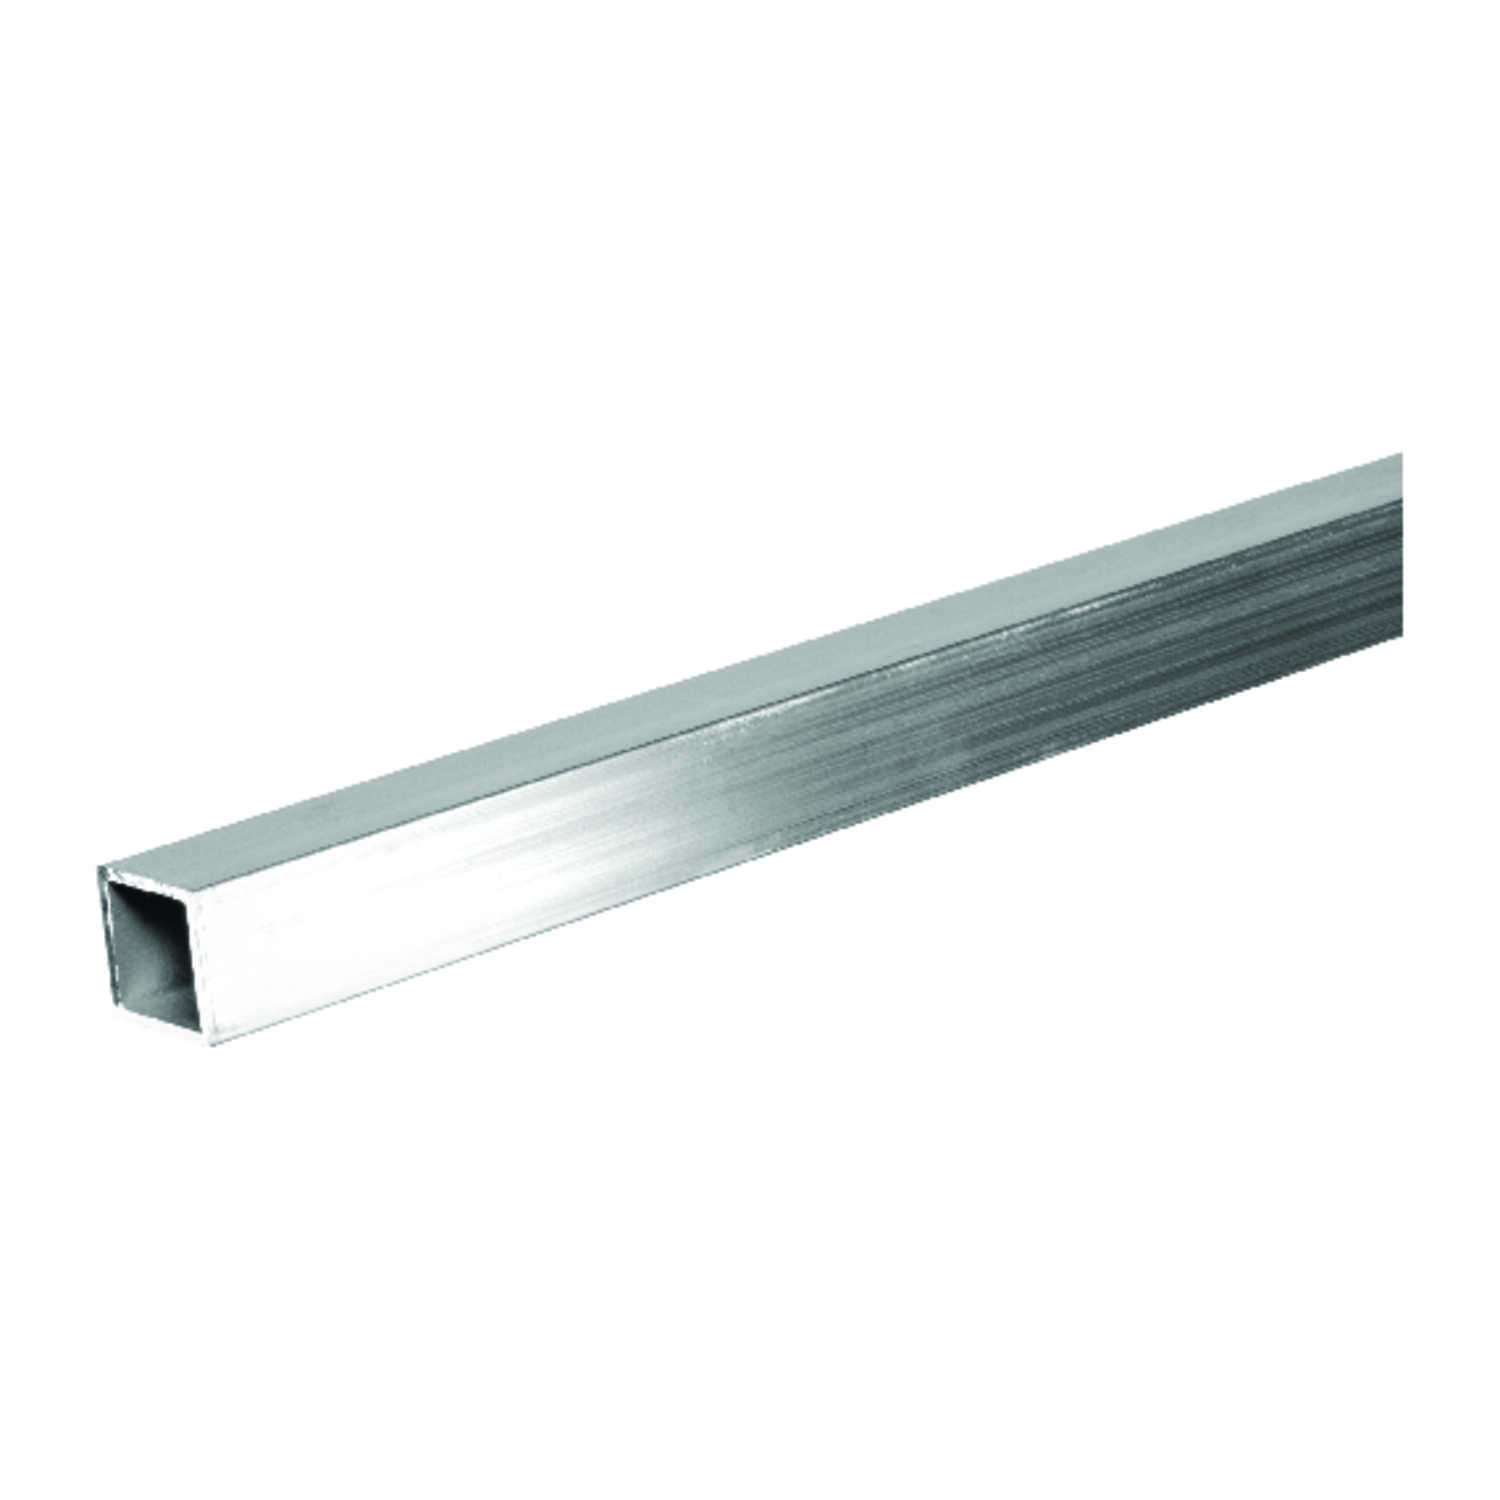 Boltmaster  3/4 in. Dia. x 6 ft. L Square  Aluminum Tube